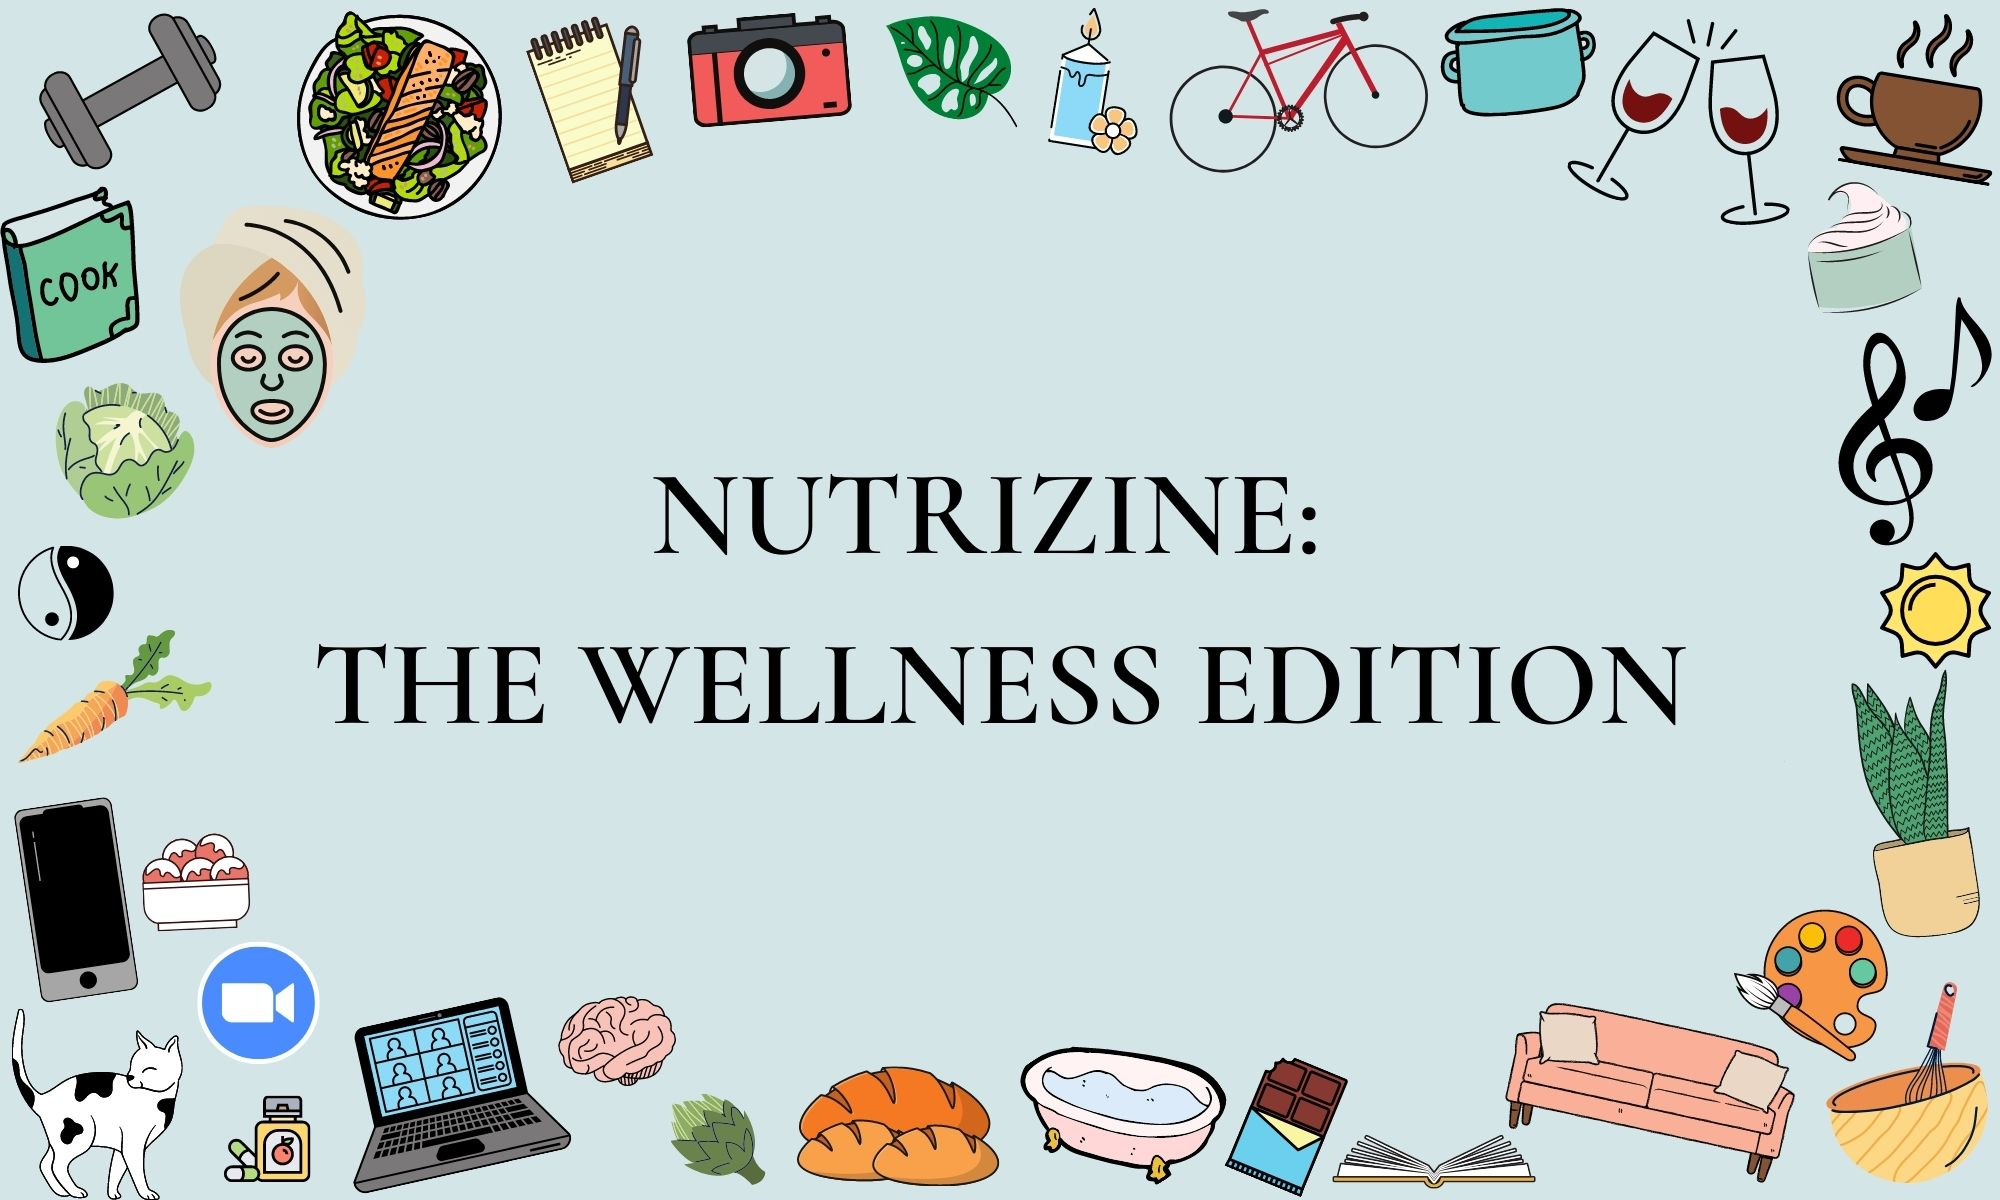 Photo of title page of wellness edition